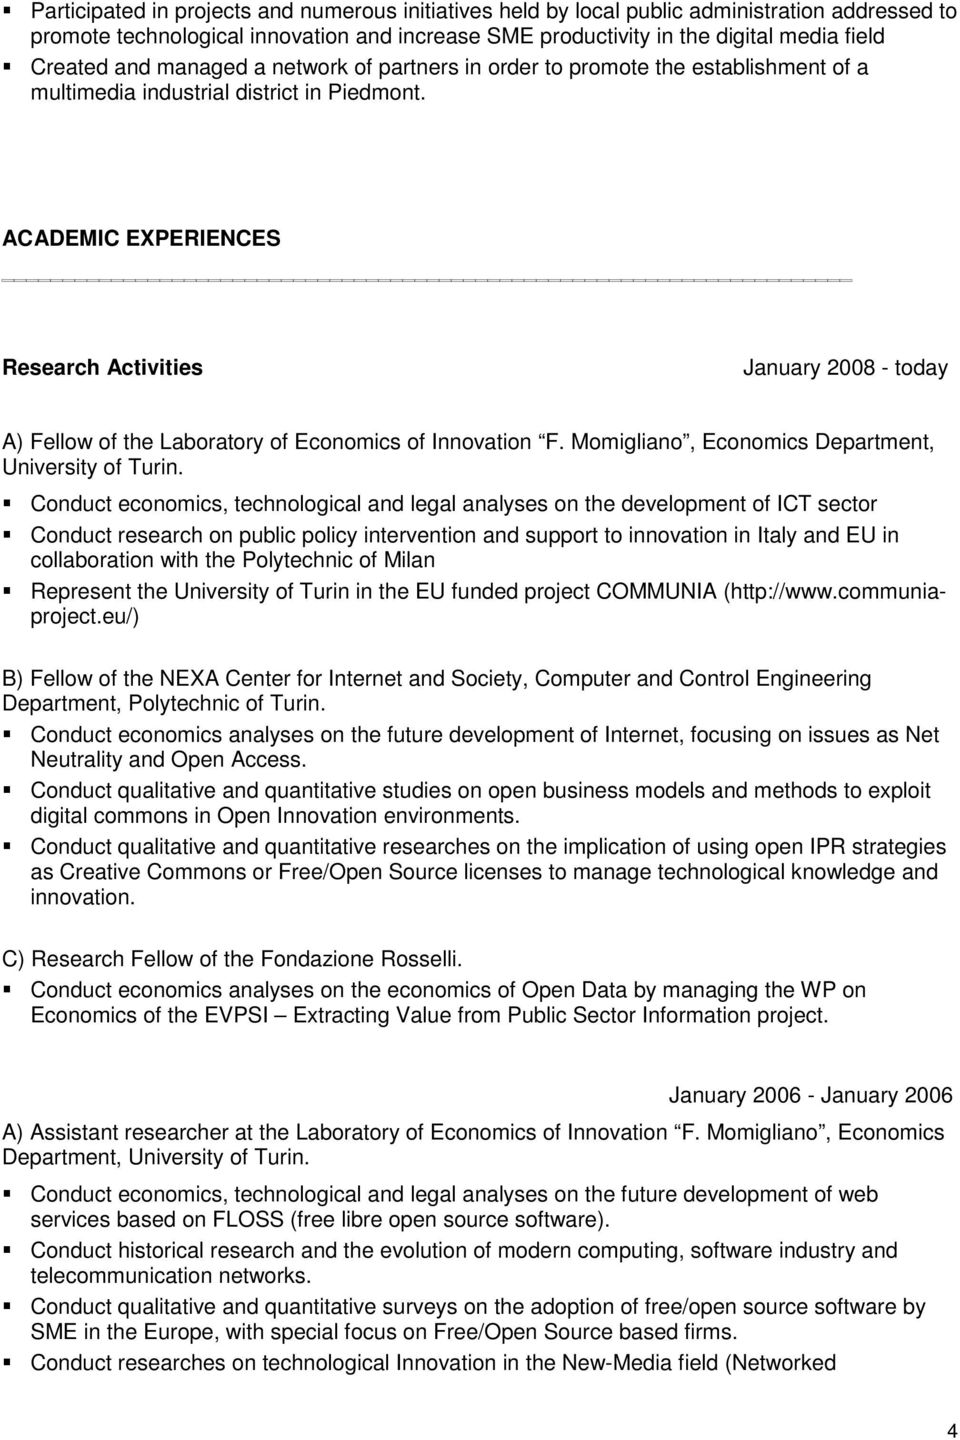 ACADEMIC EXPERIENCES Research Activities January 2008 - today A) Fellow of the Laboratory of Economics of Innovation F. Momigliano, Economics Department, University of Turin.